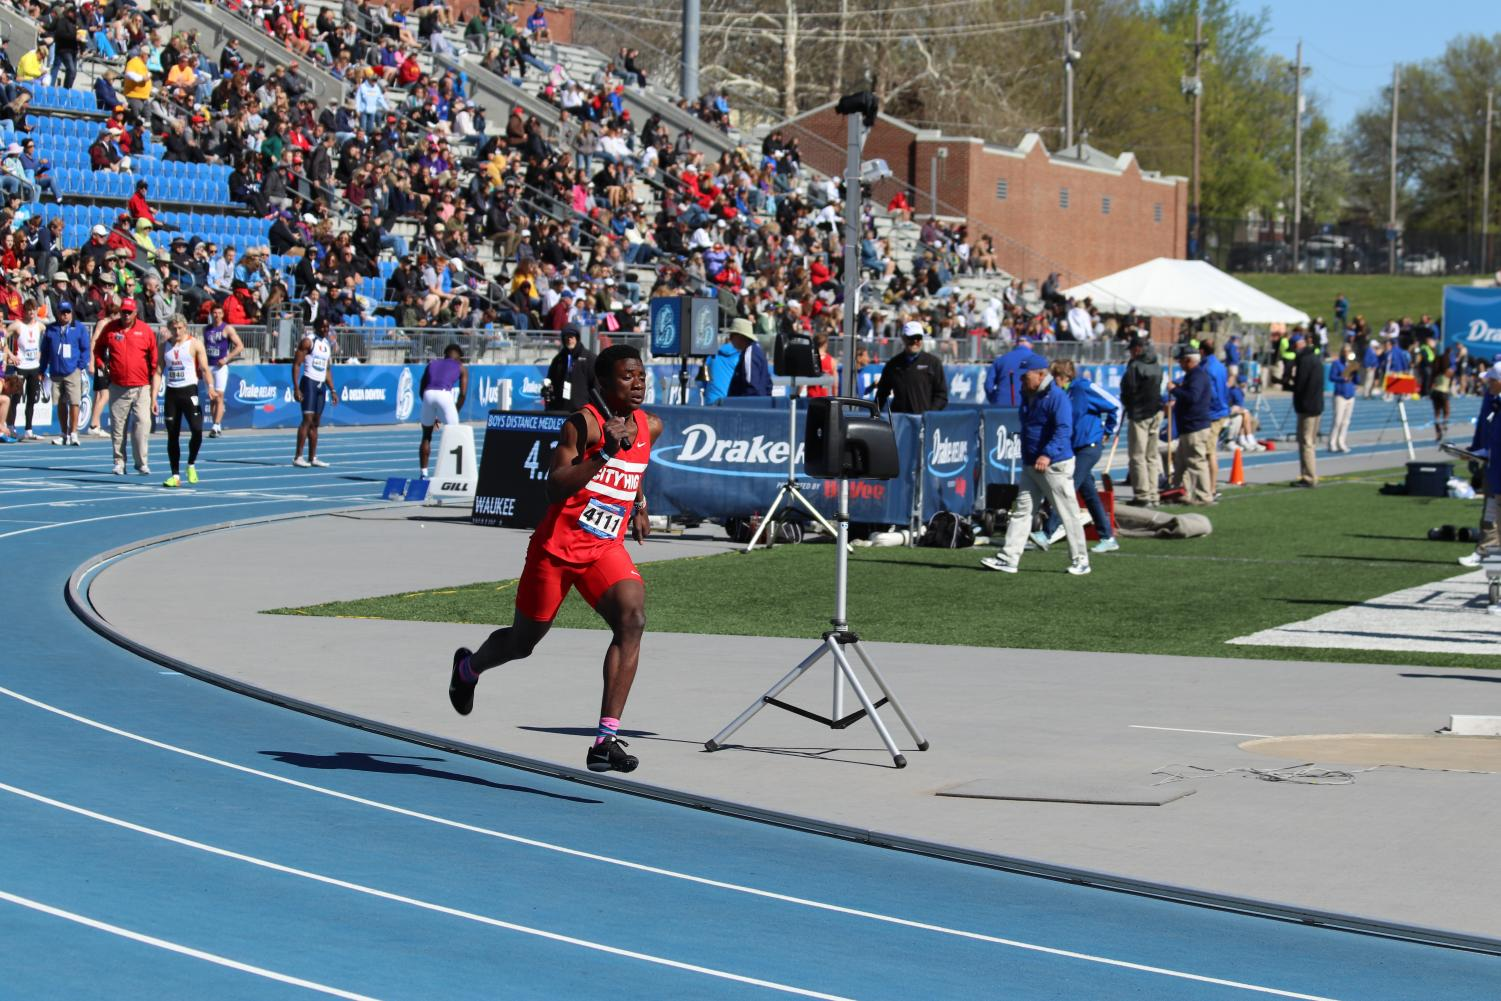 Kaleba Jack starting off the 4x100 at Drake Relays.